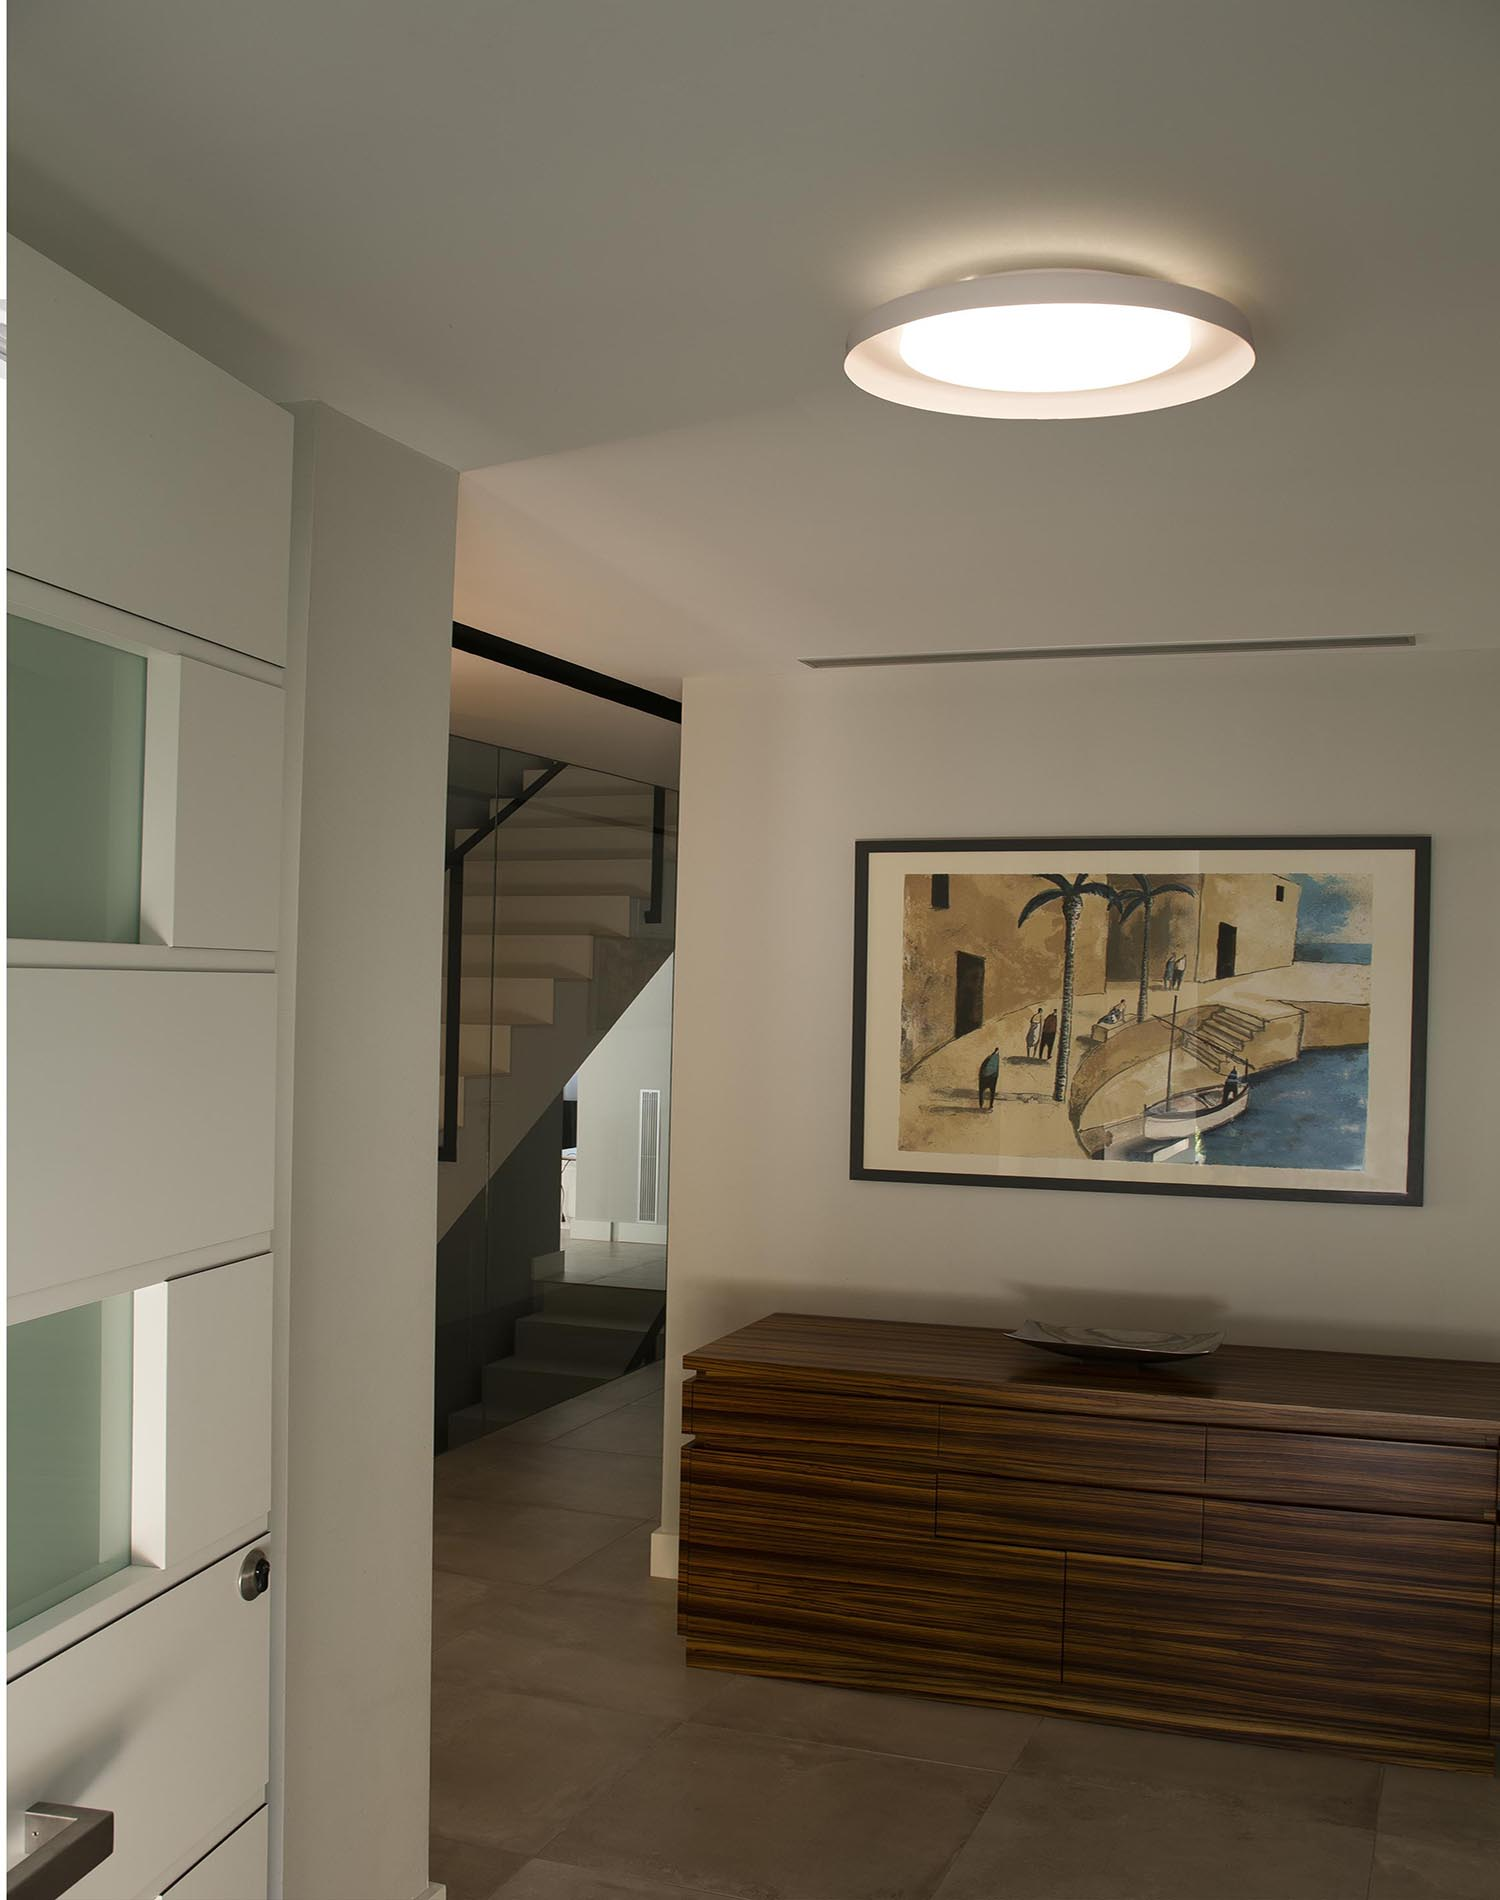 More information of DOLME ceiling lamp - Faro